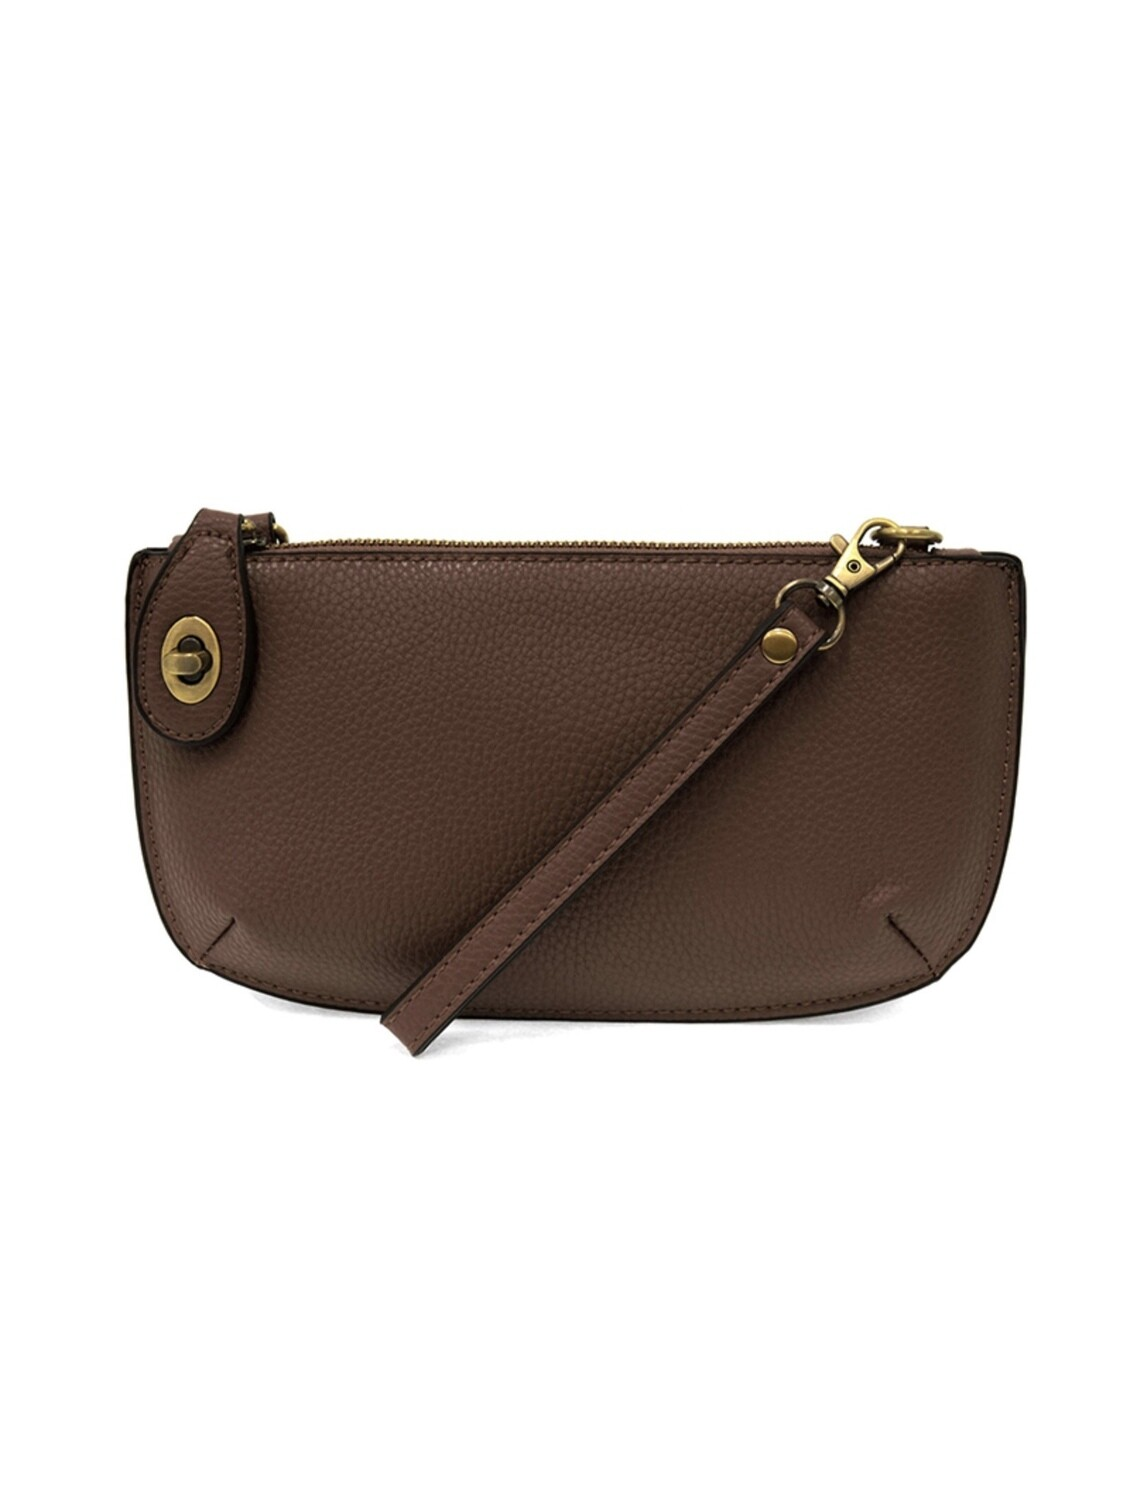 Mini Crossbody Wristlet Clutch Chocolate JA8000-020